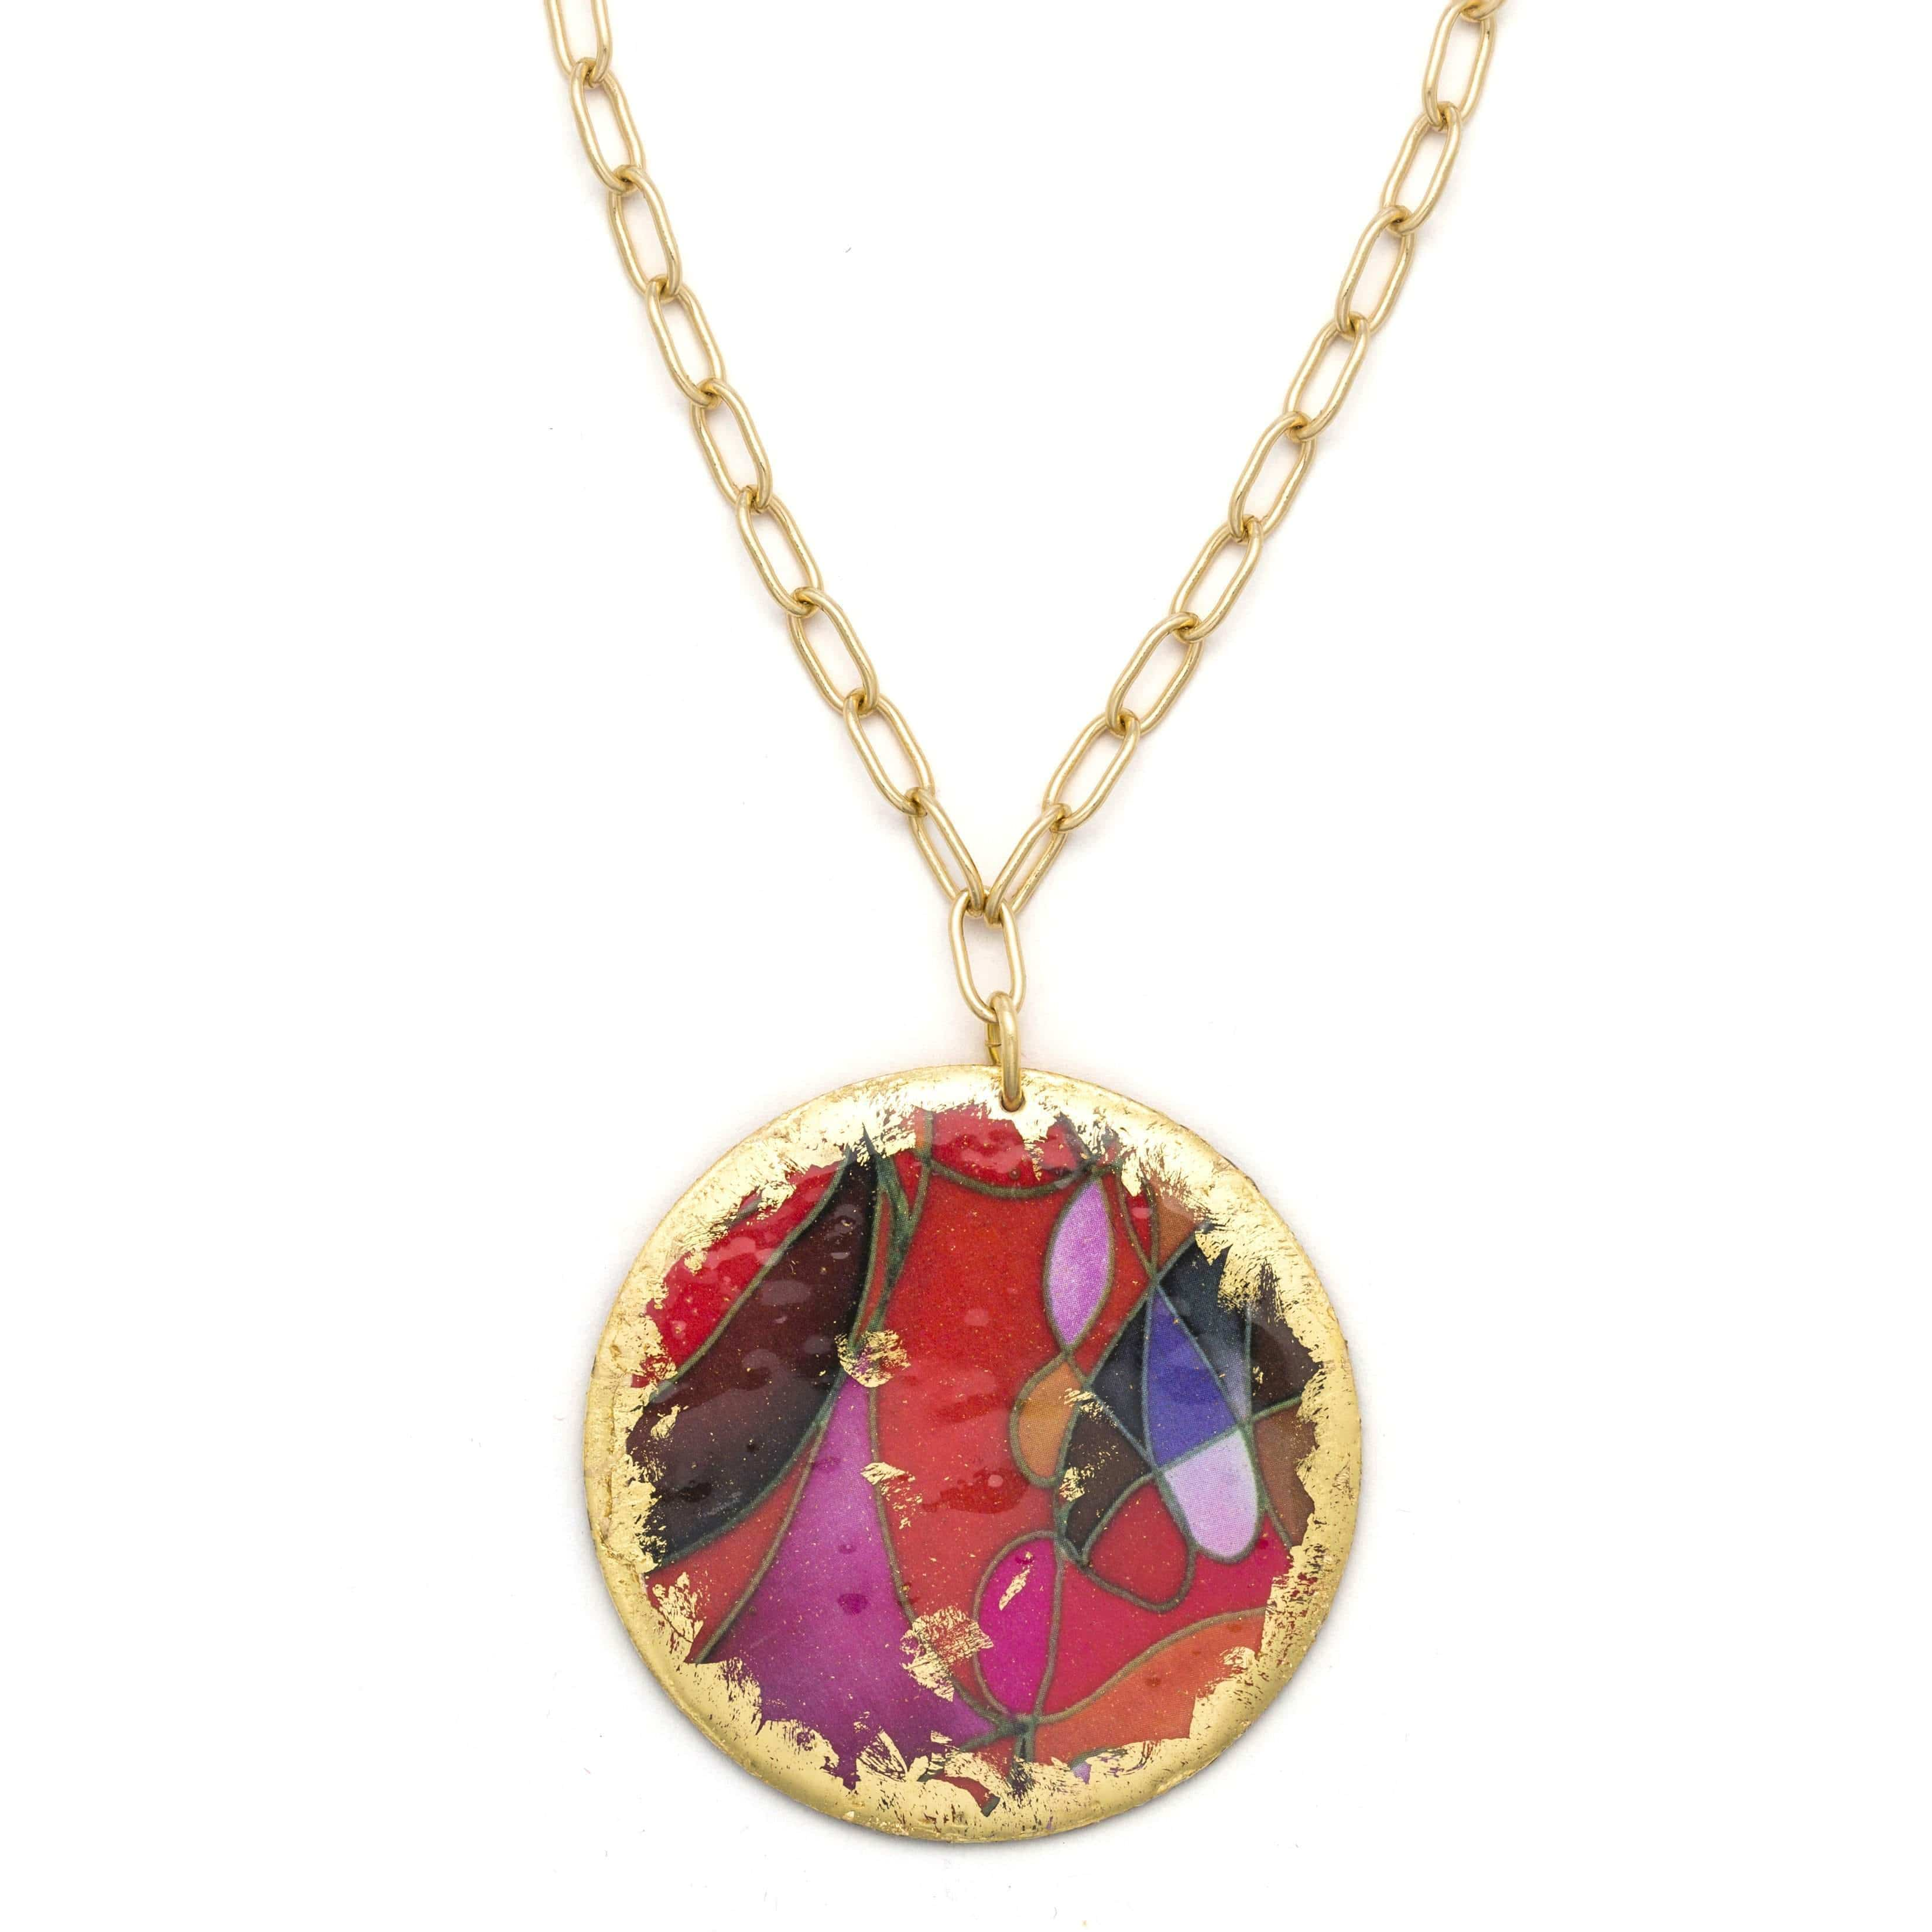 "Red Canyons 17"" Gold Pendant - MG201-Evocateur-Renee Taylor Gallery"